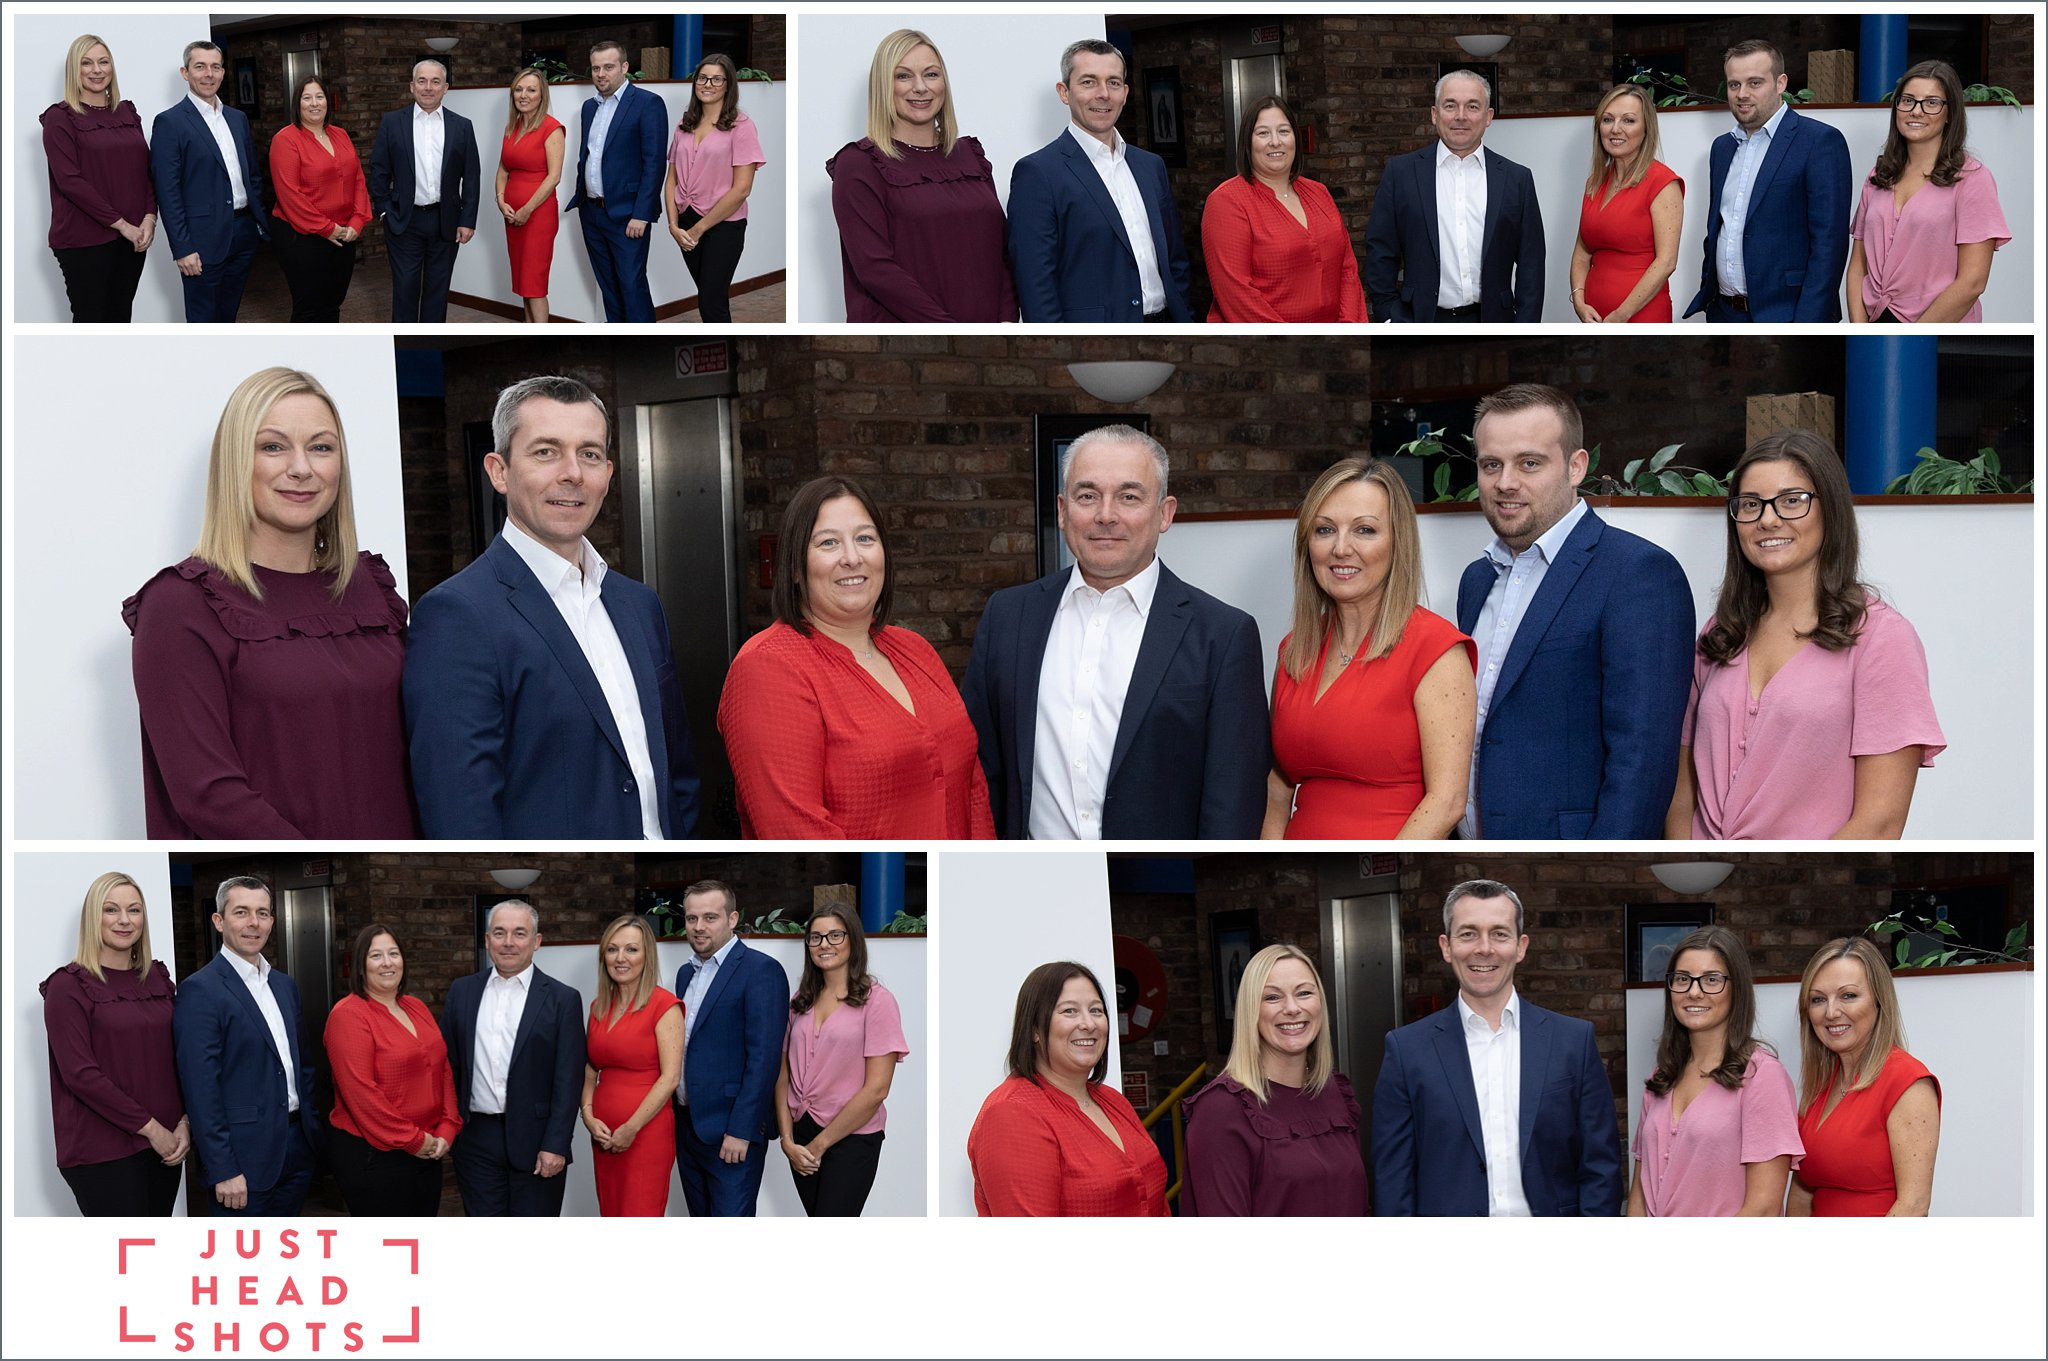 Photograph of team of people at a Wealth Management company in Warrrington, Cheshire